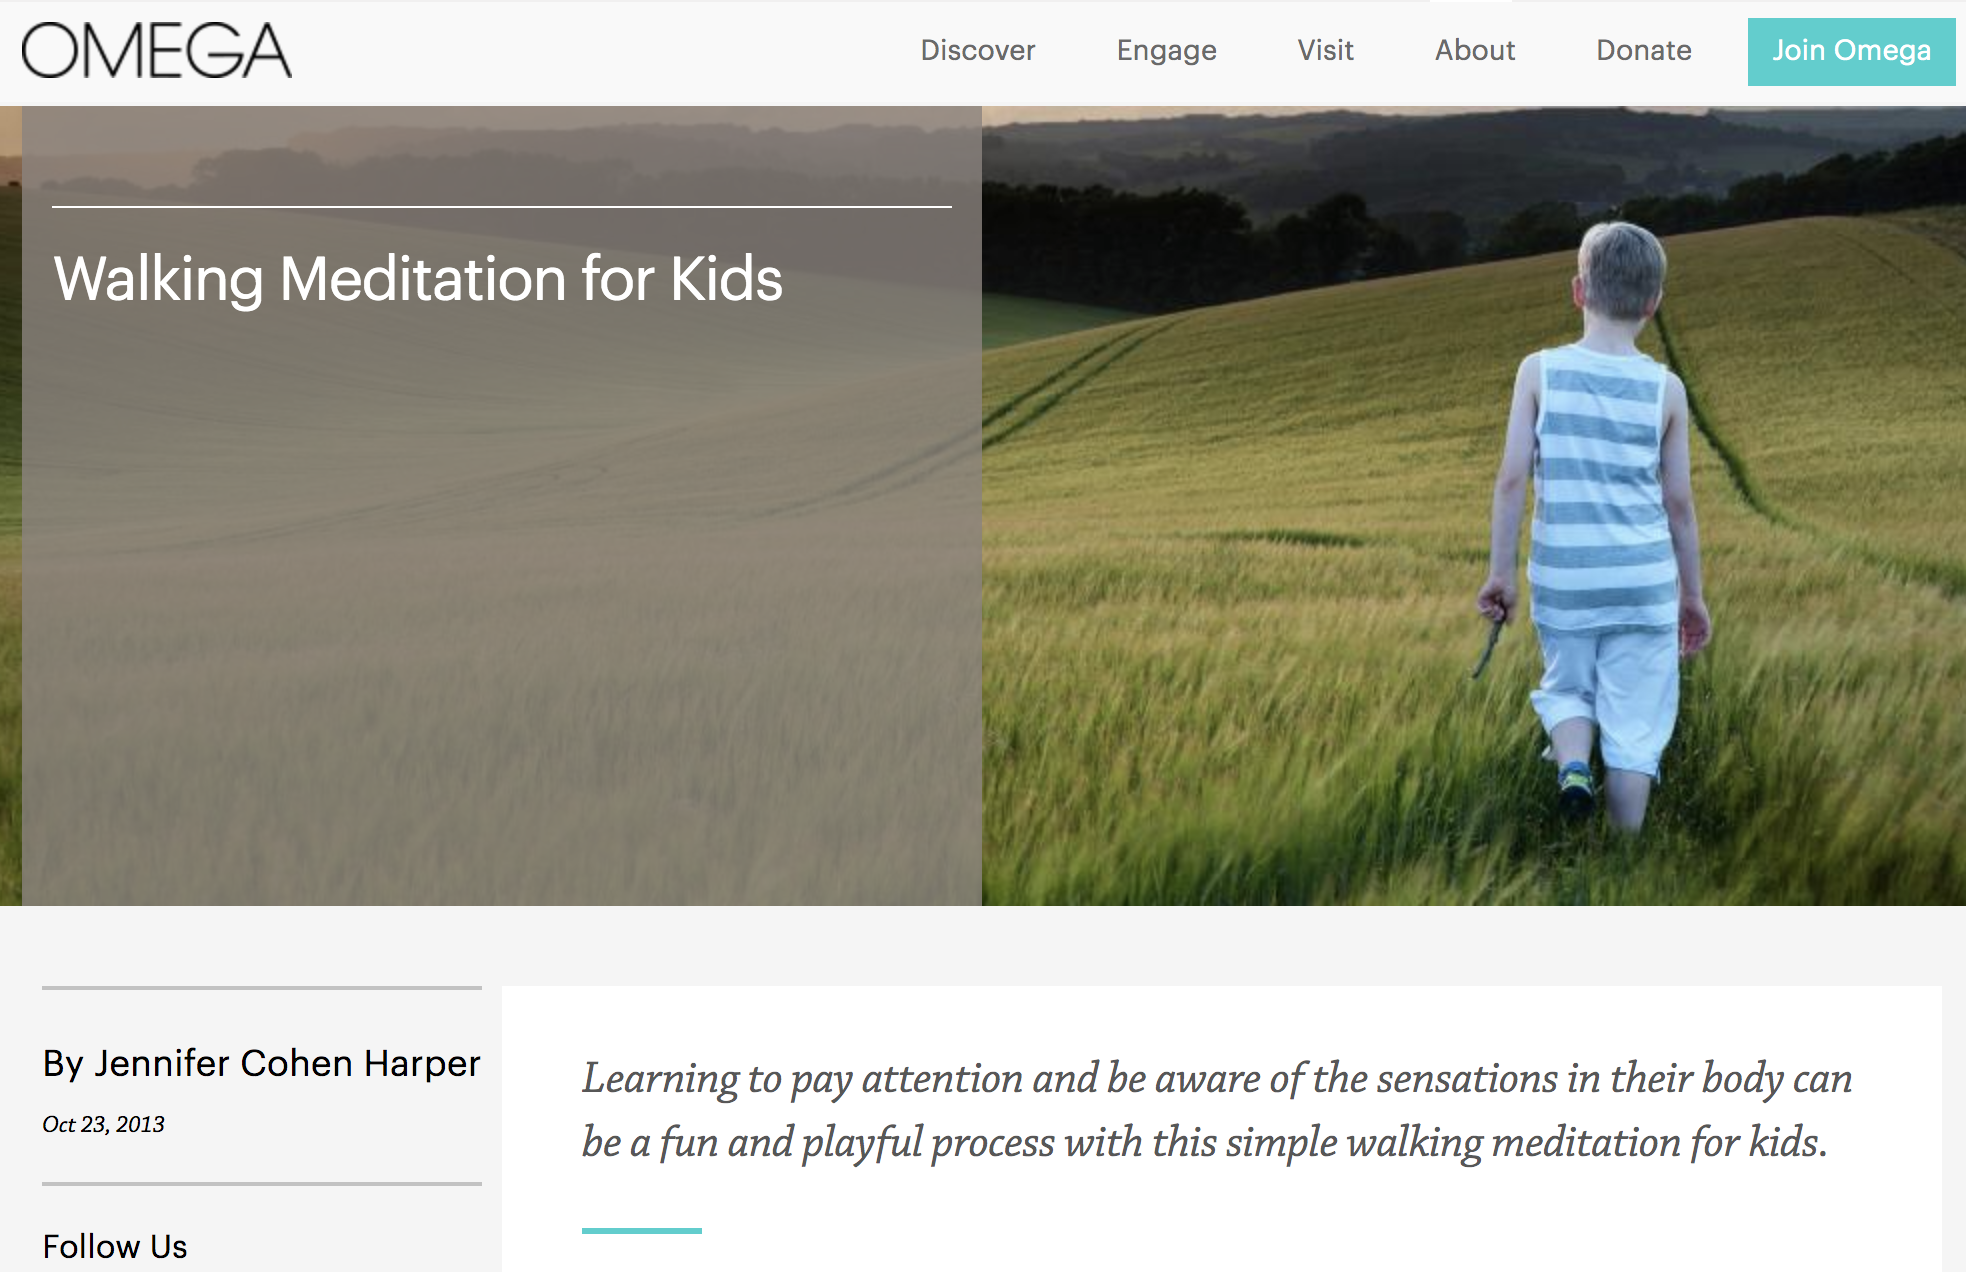 ARTICLE: Walking Meditation for Kids   Learning to pay attention and be aware of the sensations in their body can be a fun and playful process with this simple walking meditation for kids.